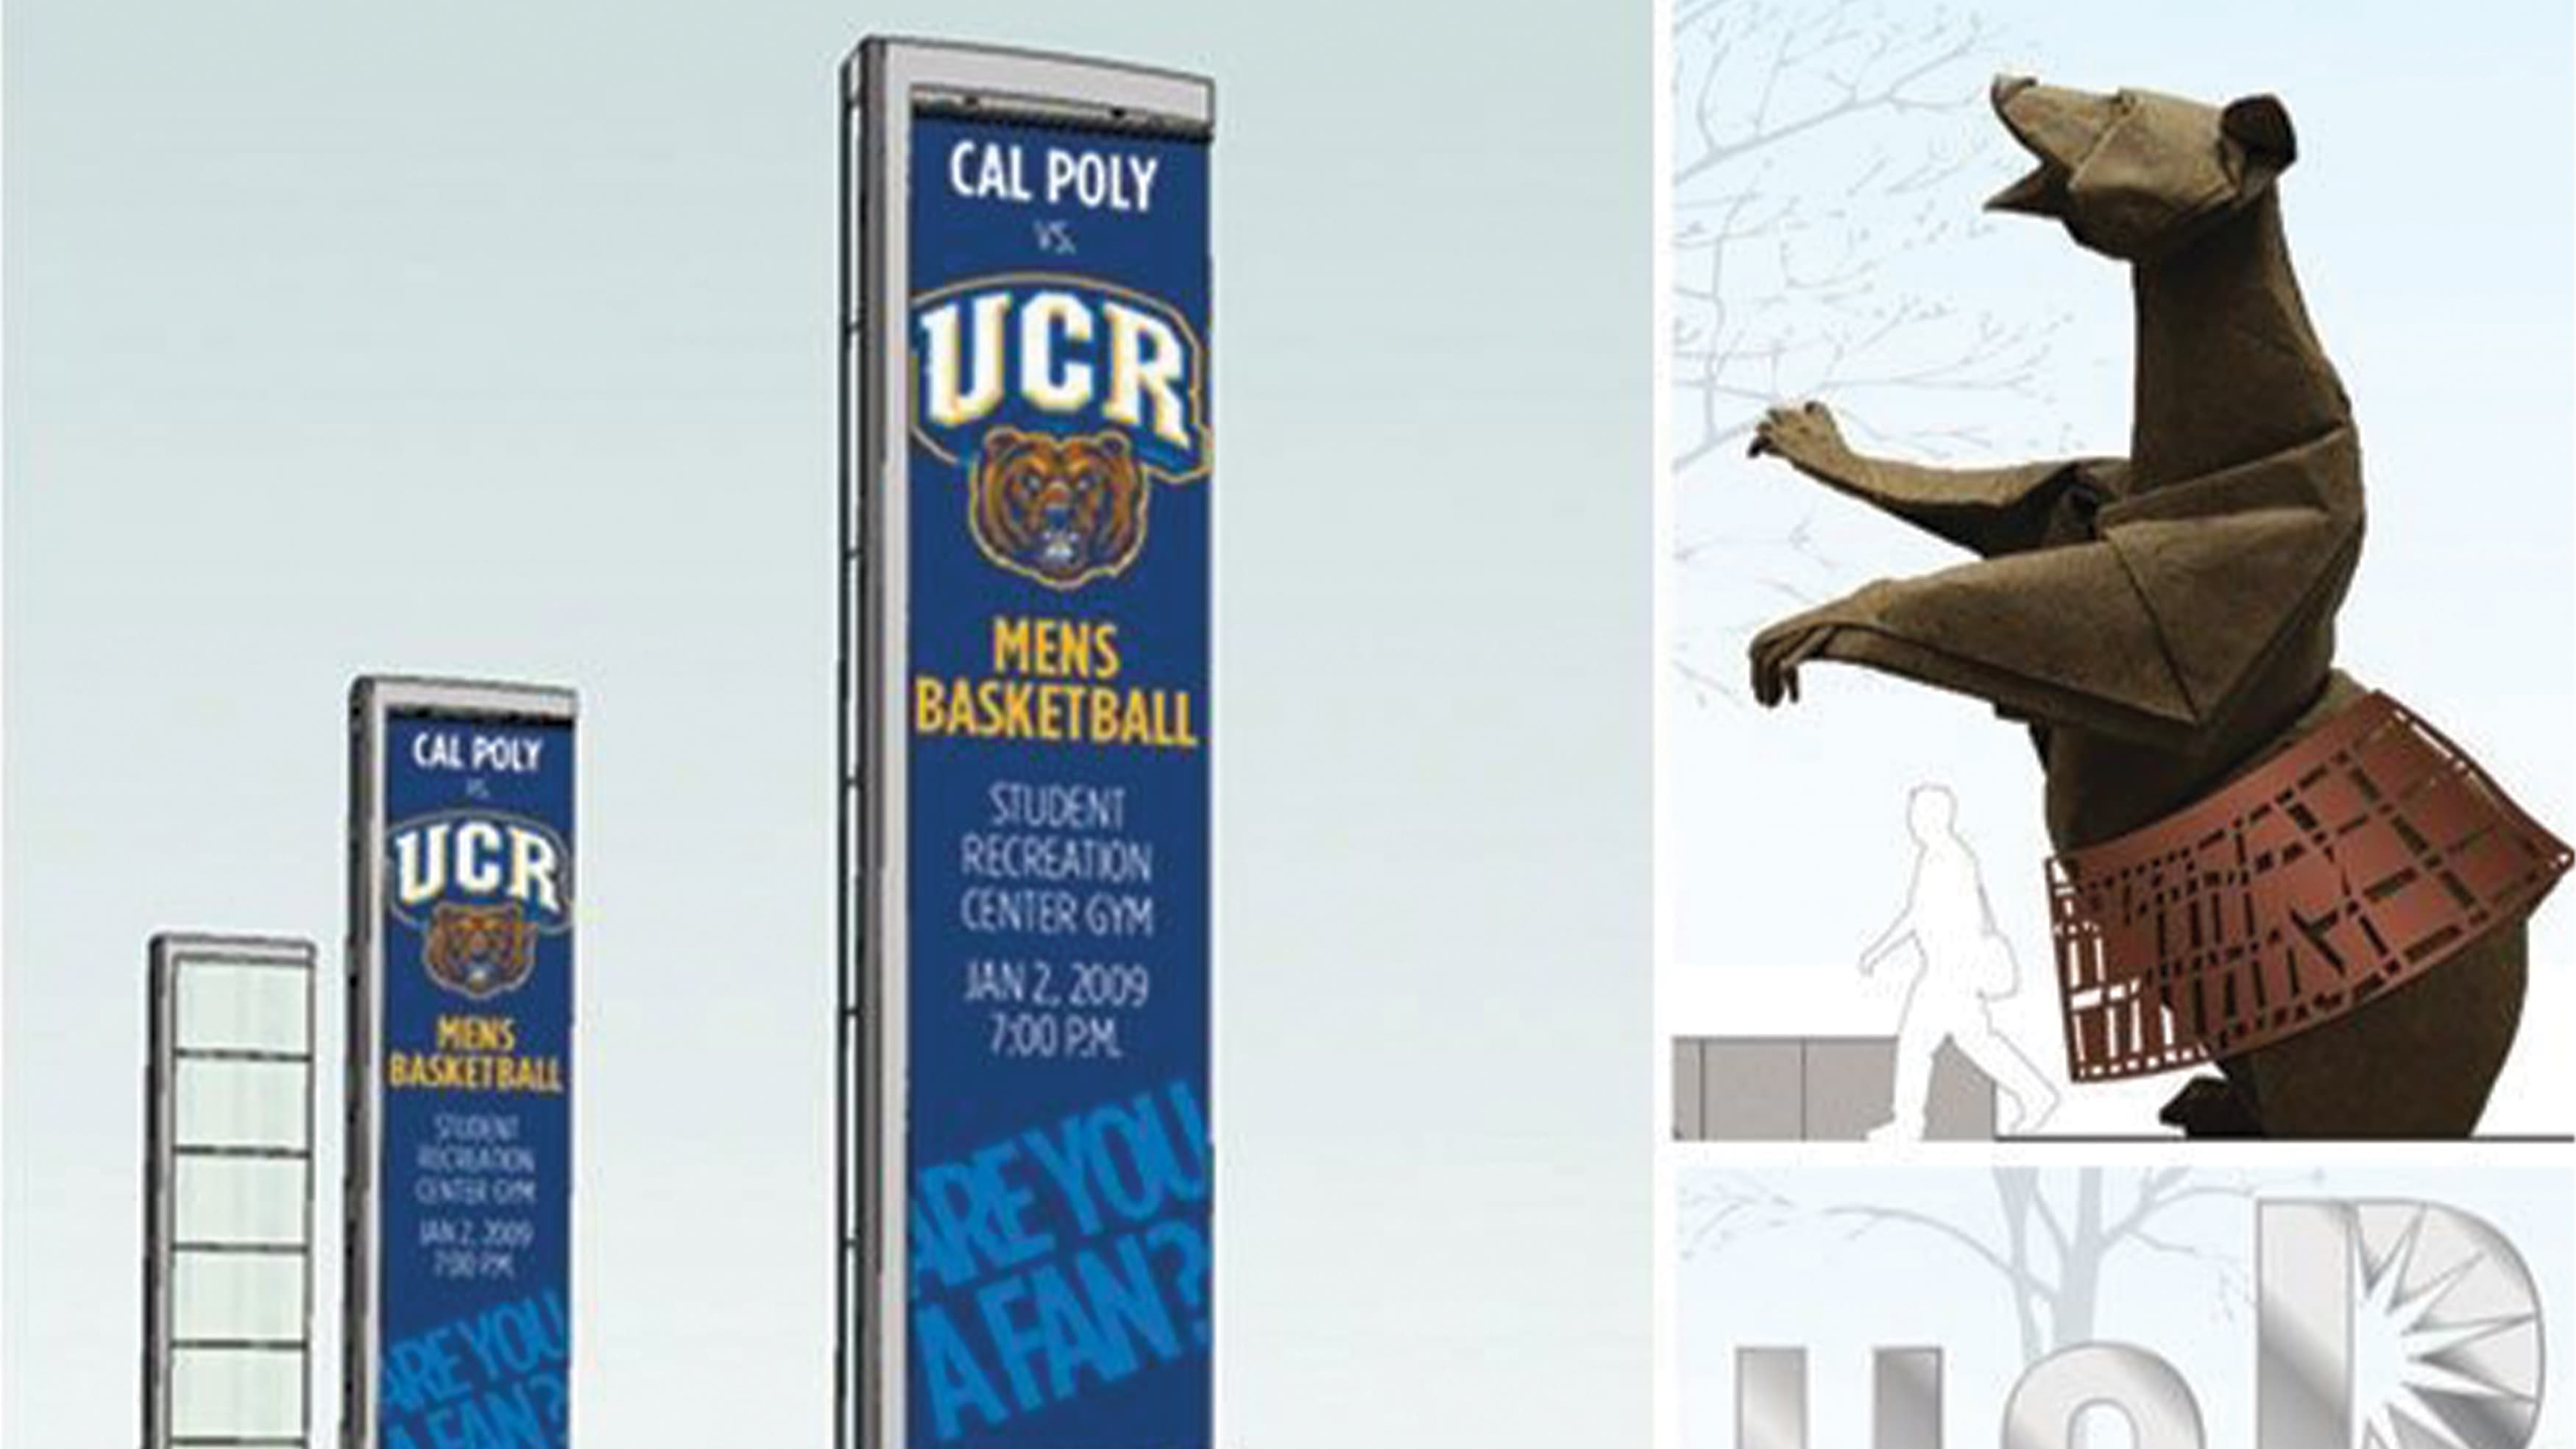 Conceptual drawings for UC Riverside prepared by RSM Design